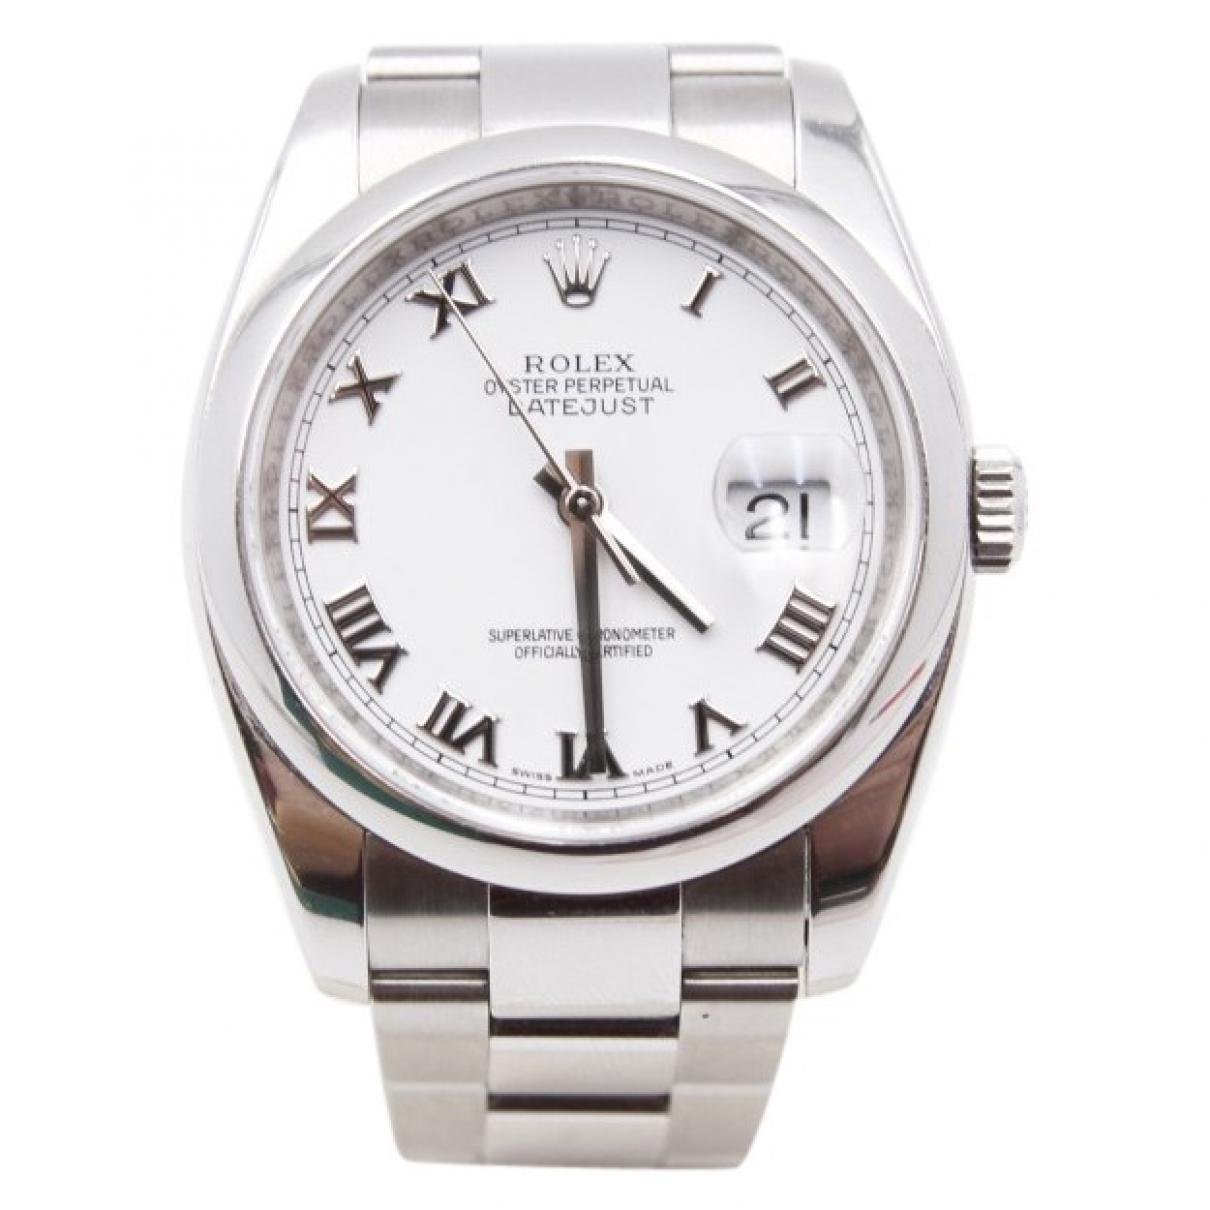 a8e47f9ade5 Rolex Datejust 36mm Watch in Metallic for Men - Lyst